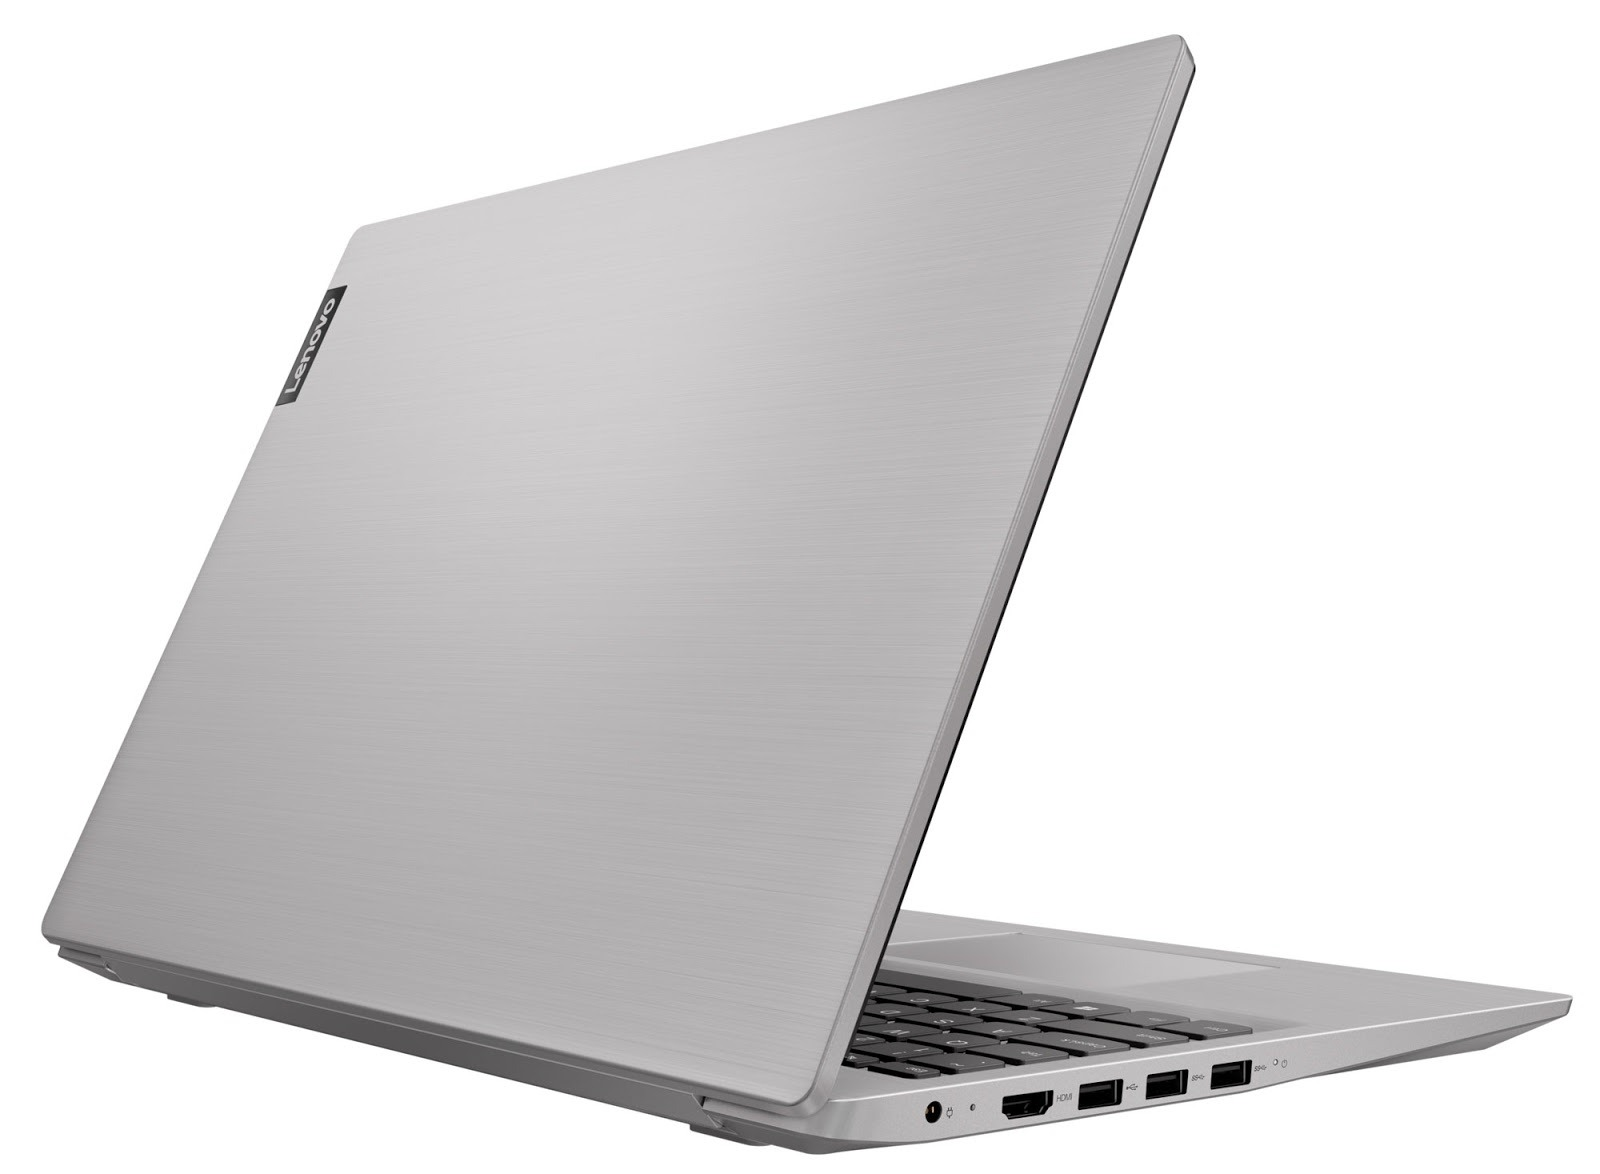 Фото 2. Ноутбук Lenovo ideapad S145-15IGM Grey (81MX003QRE)